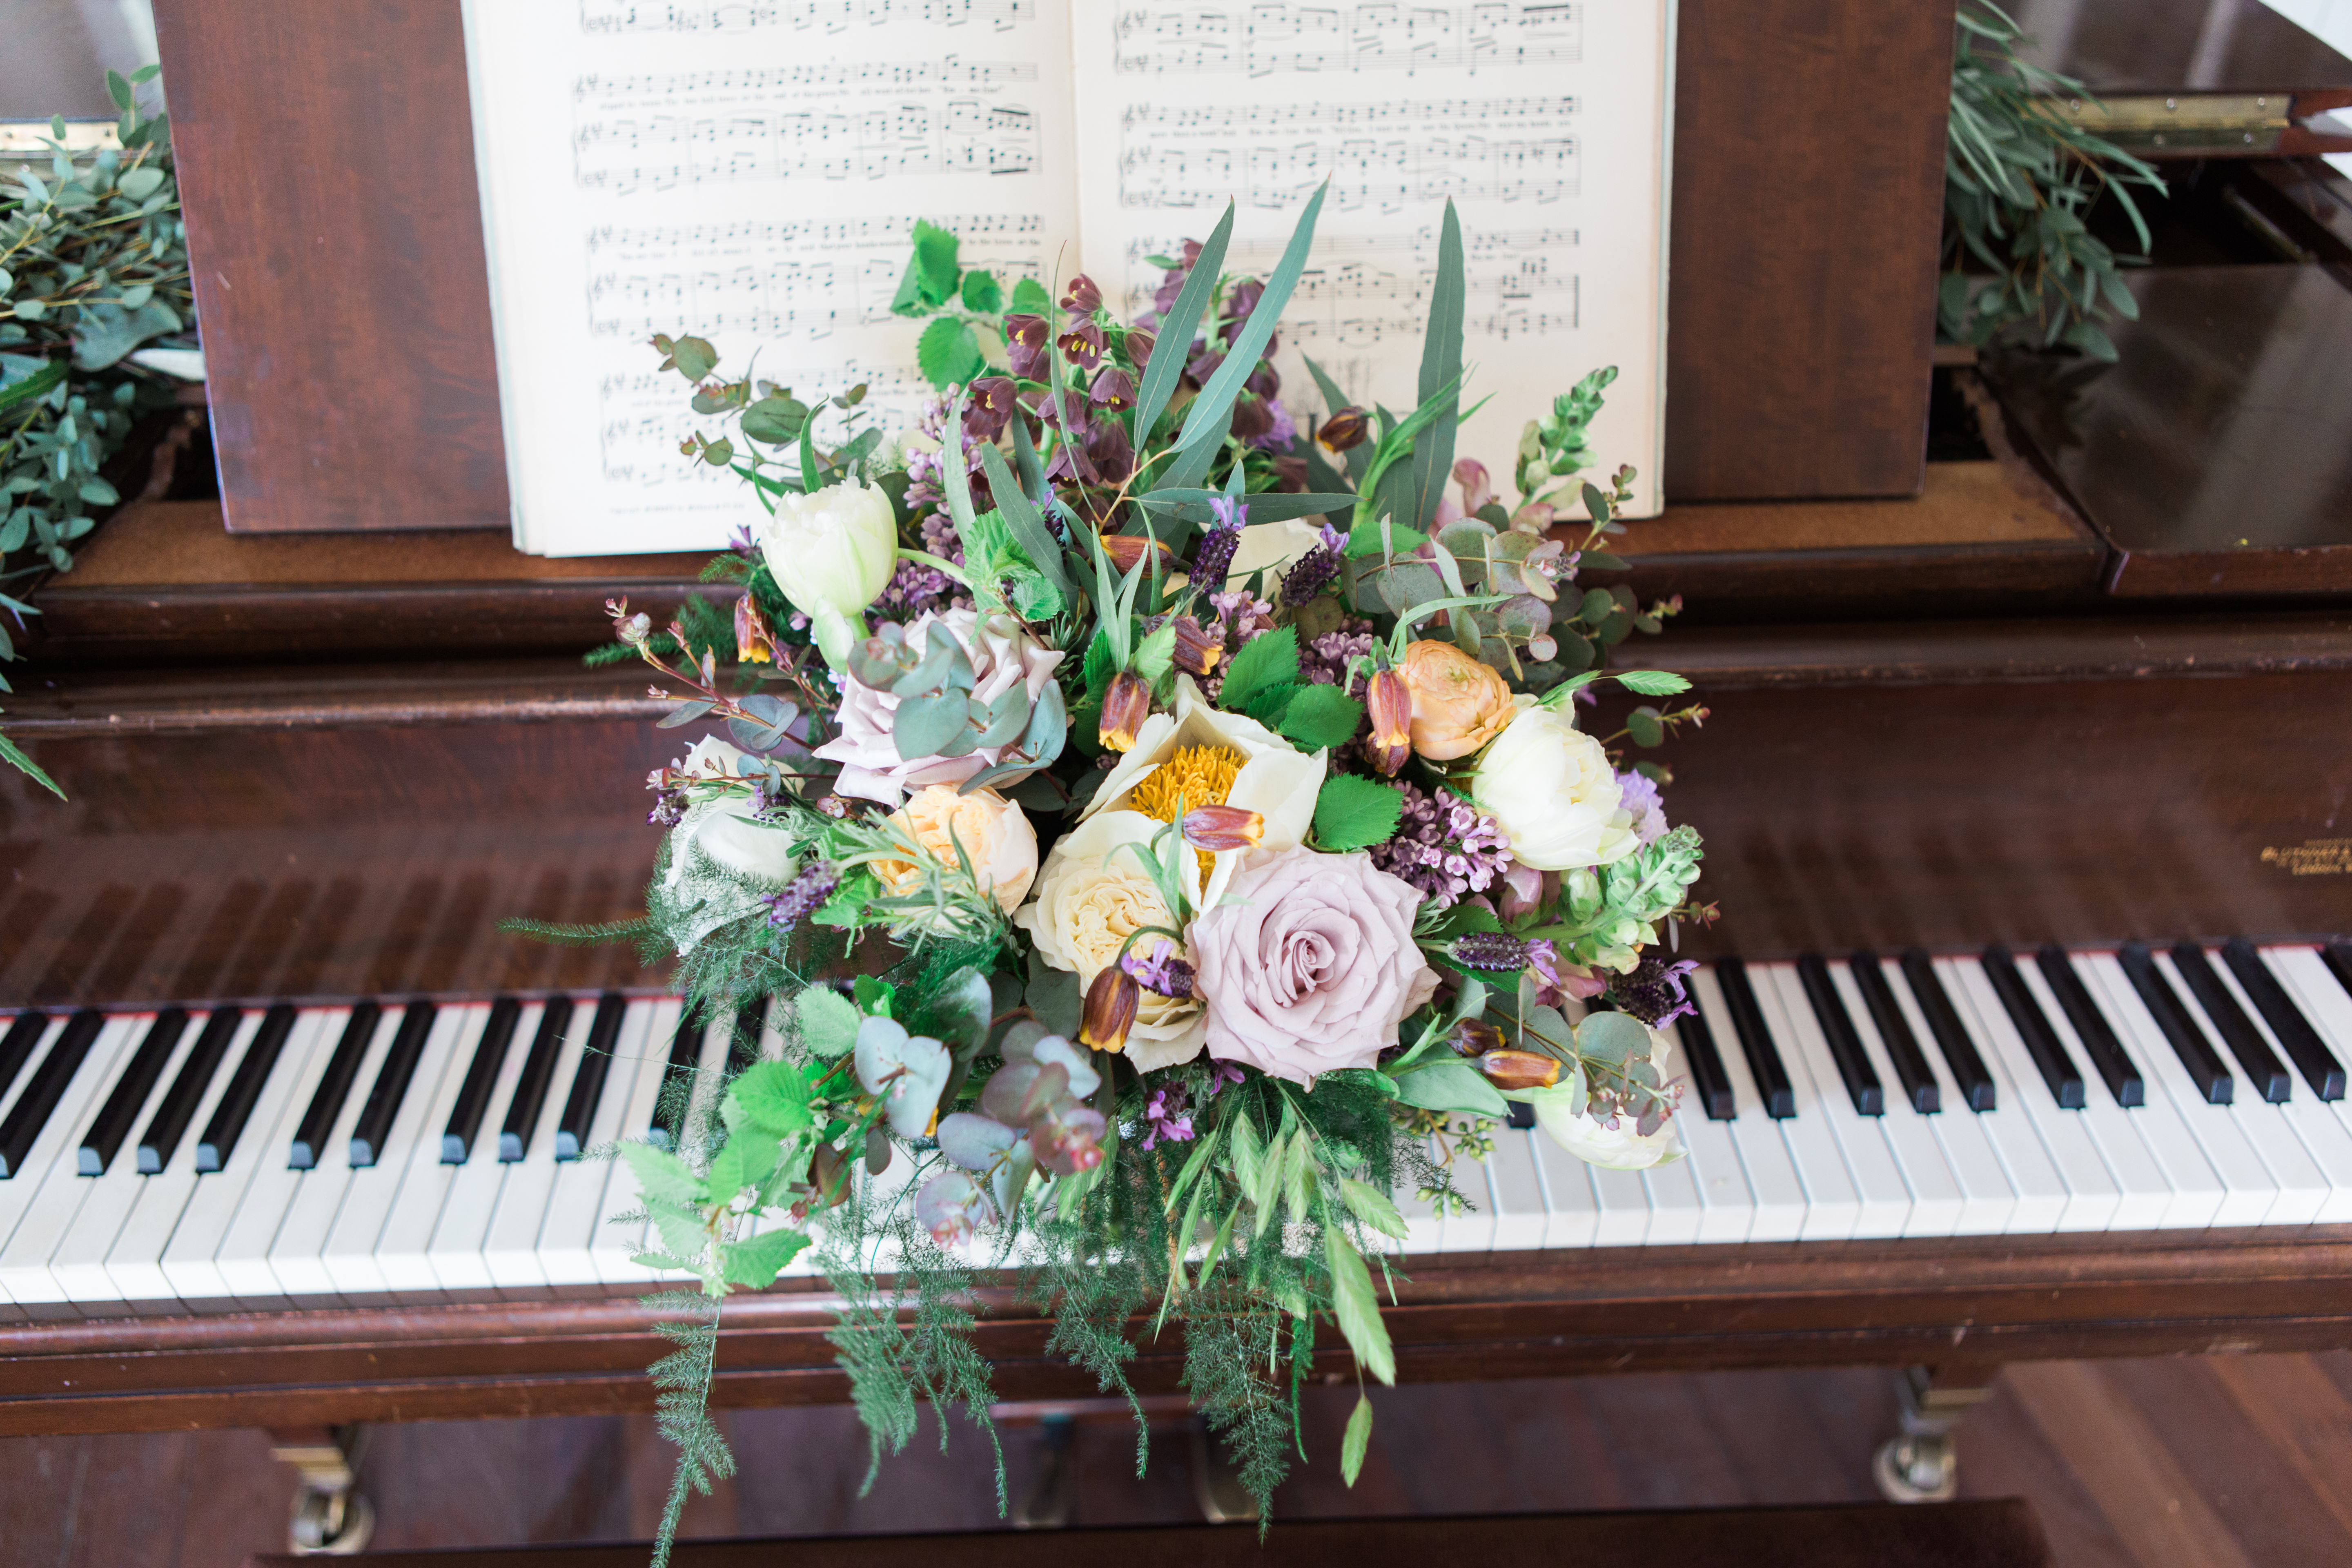 Piano with wedding flowers